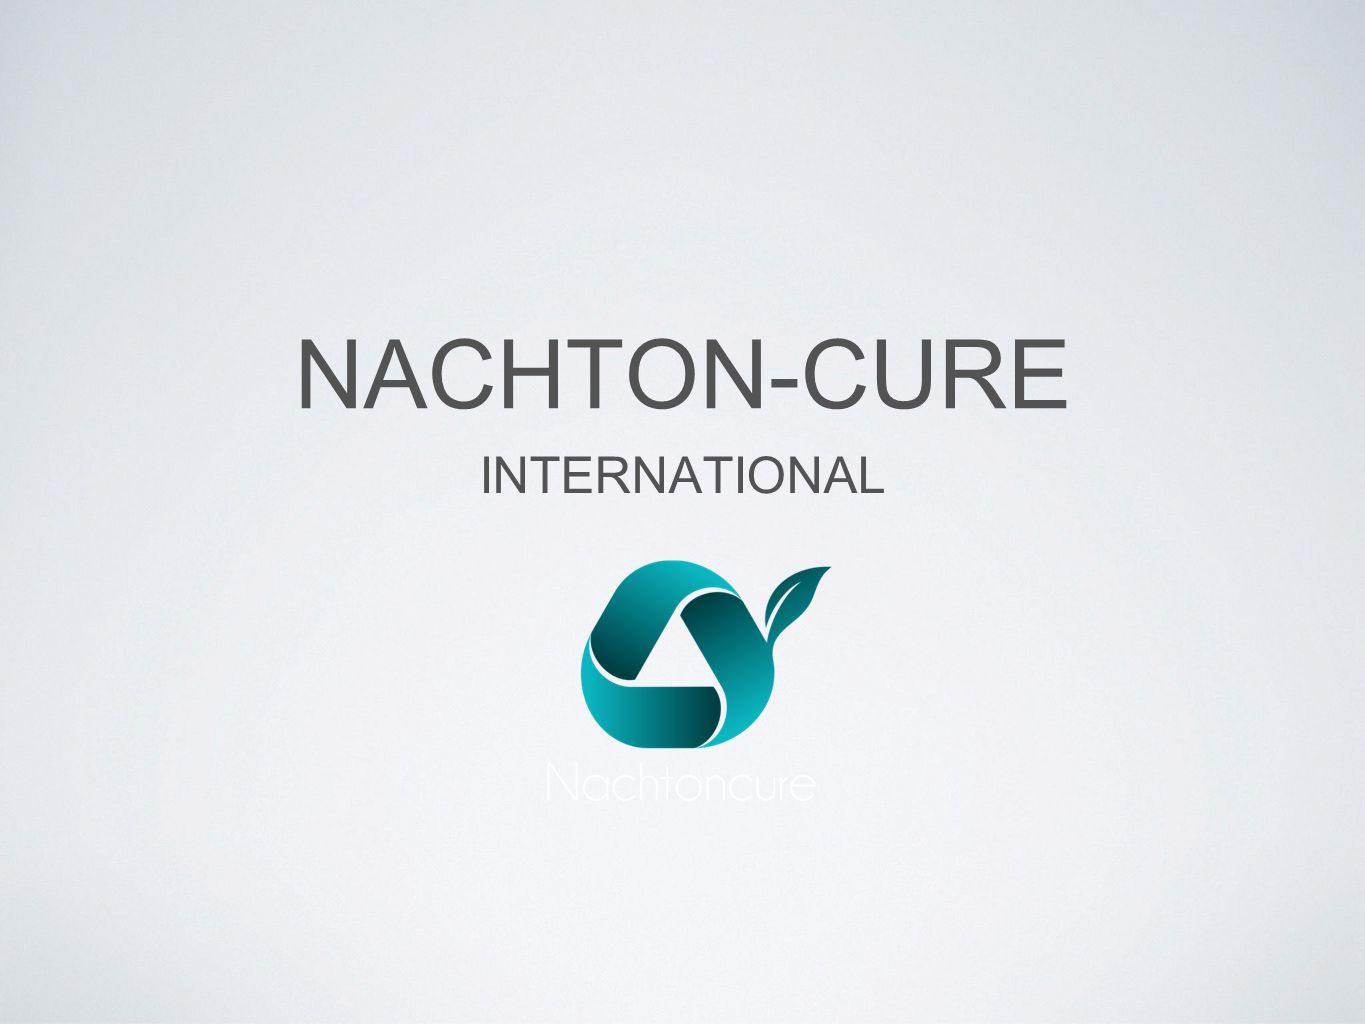 NACHTON-CURE INTERNATIONAL